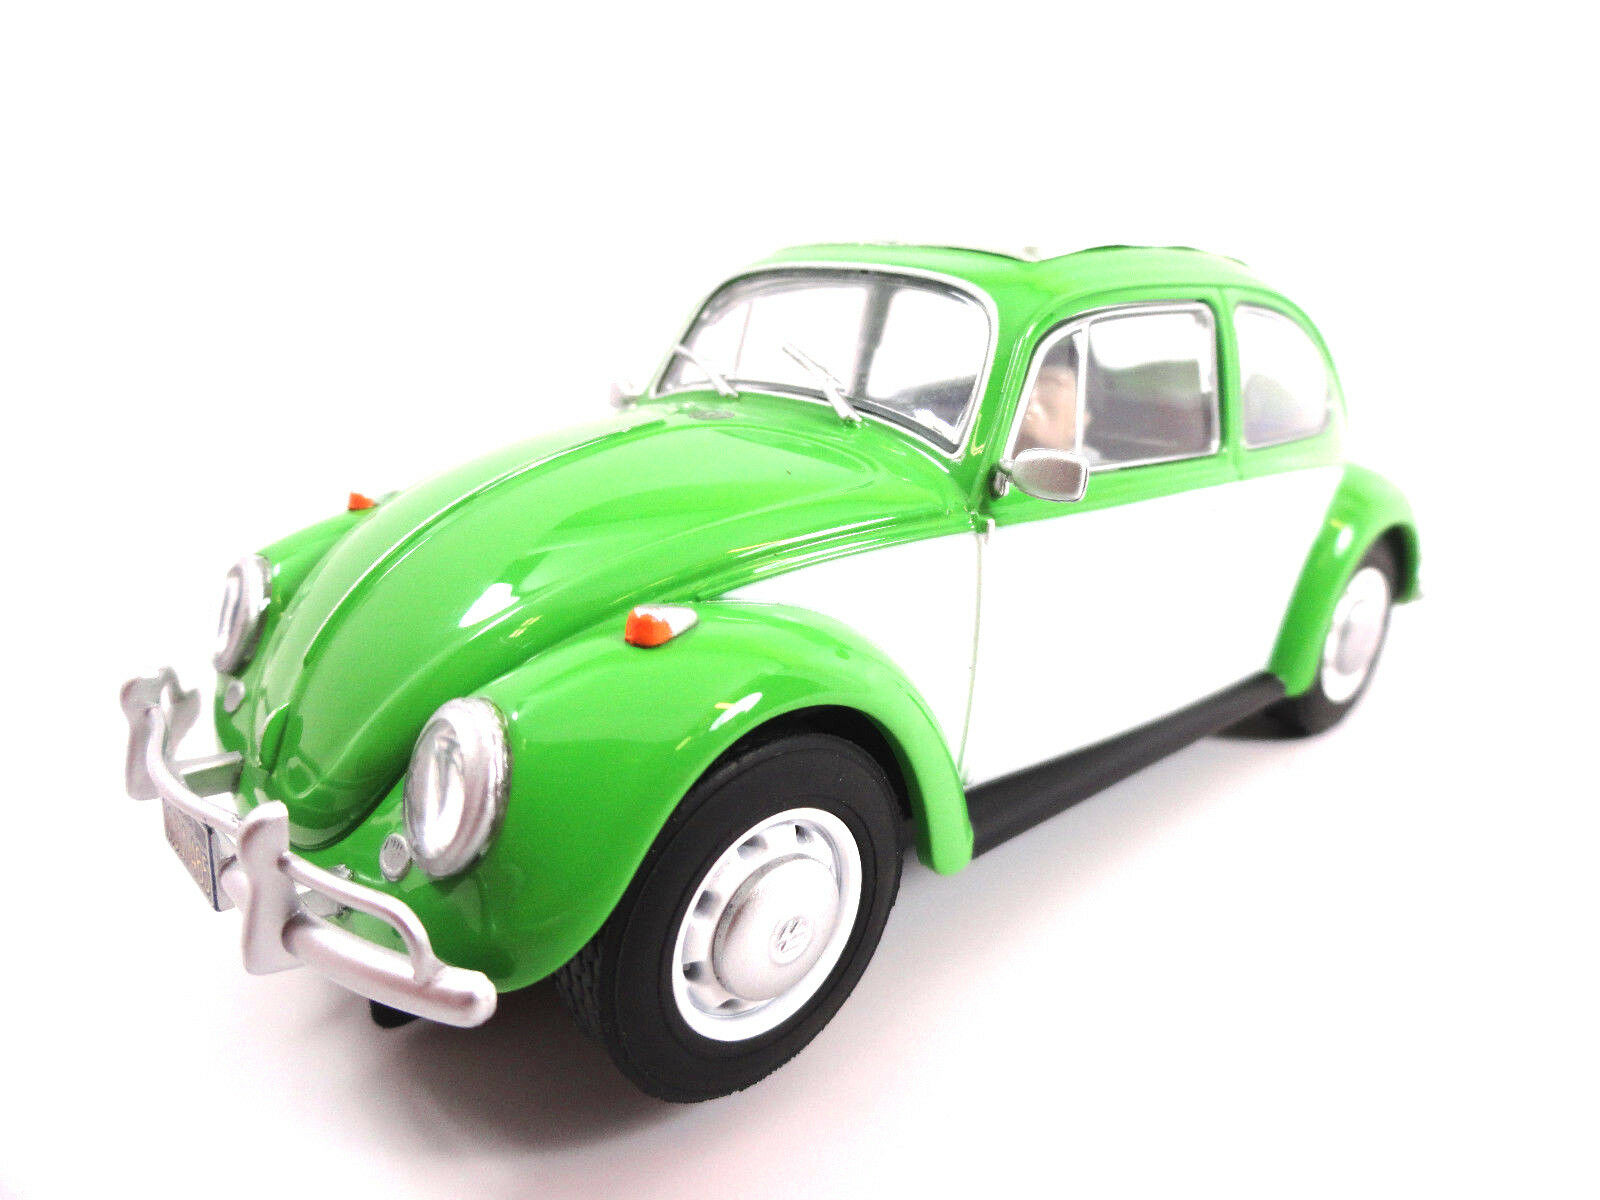 Scalextric VW Volkswagen Green Beetle Limited 1 32 Scale Slot Car C3371A-Beetle